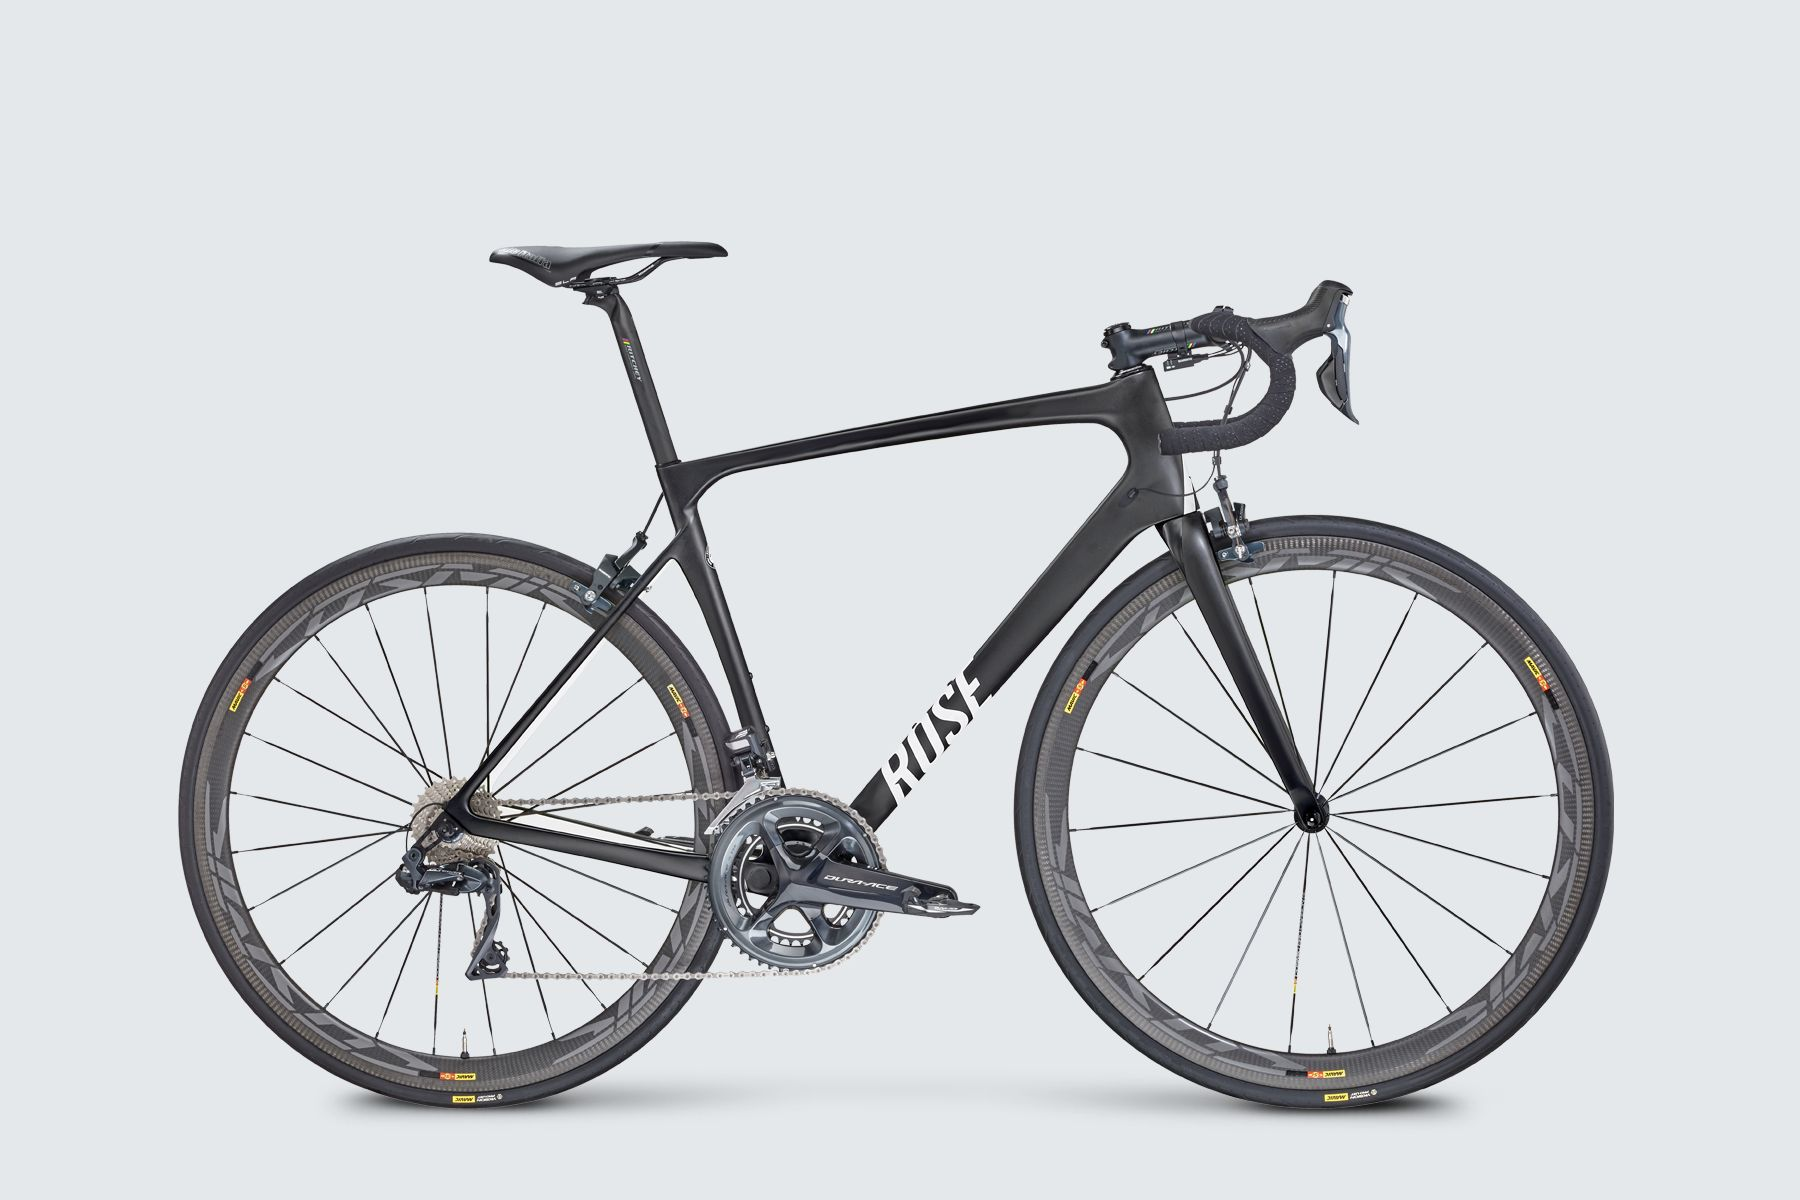 X-LITE FOUR Ultegra Di2 POWER